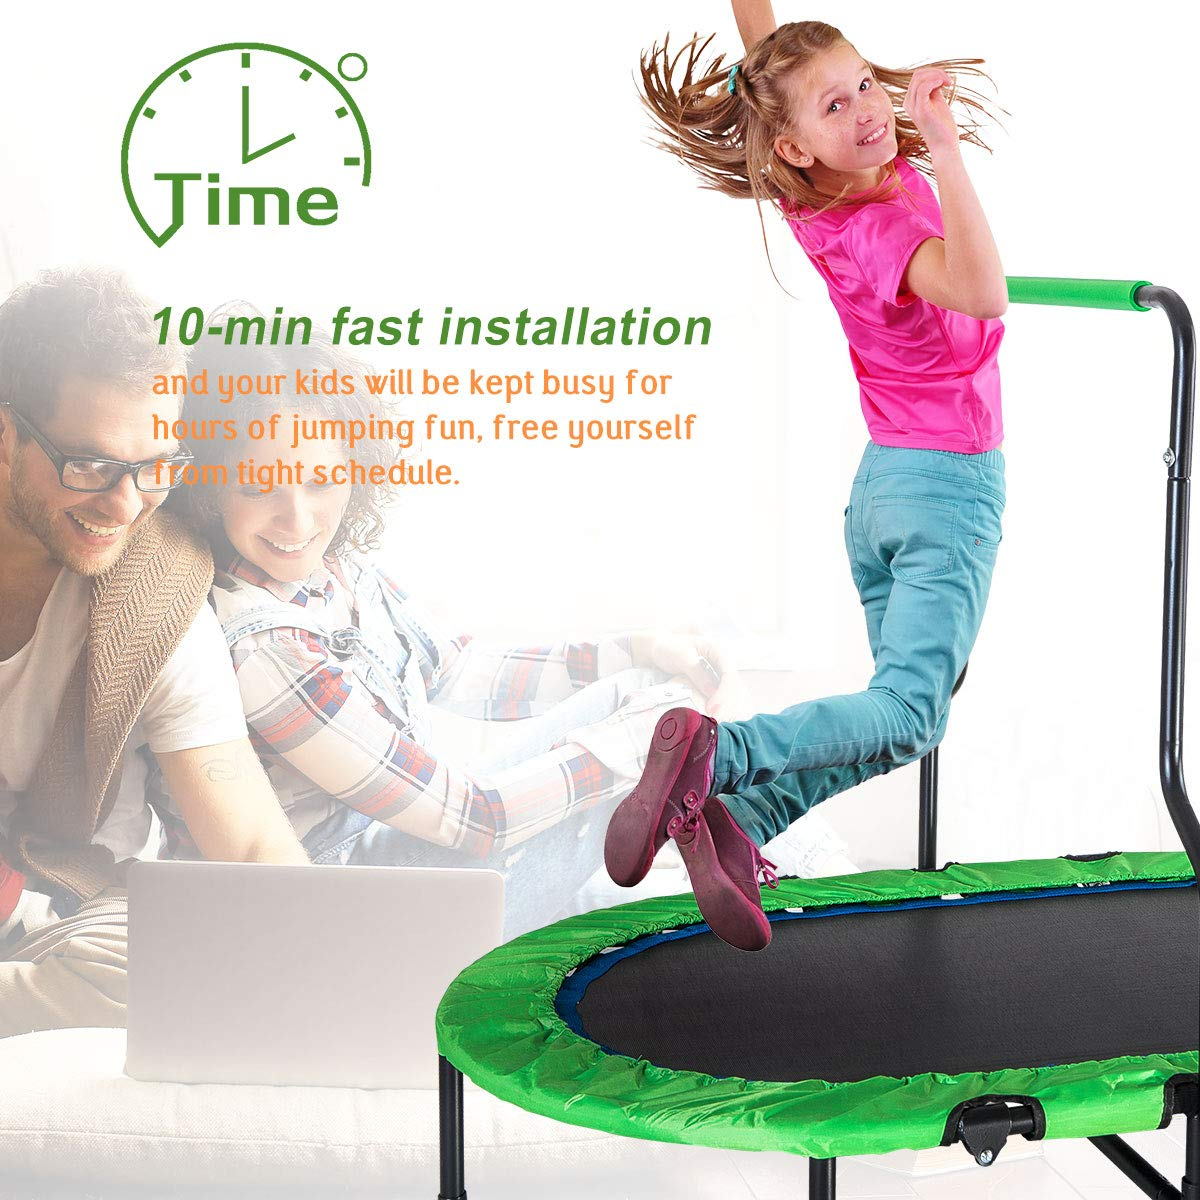 Merax Mini Rebounder Trampoline with Handle for Two Kids, Parent-Child Trampoline (Green) by Merax (Image #5)